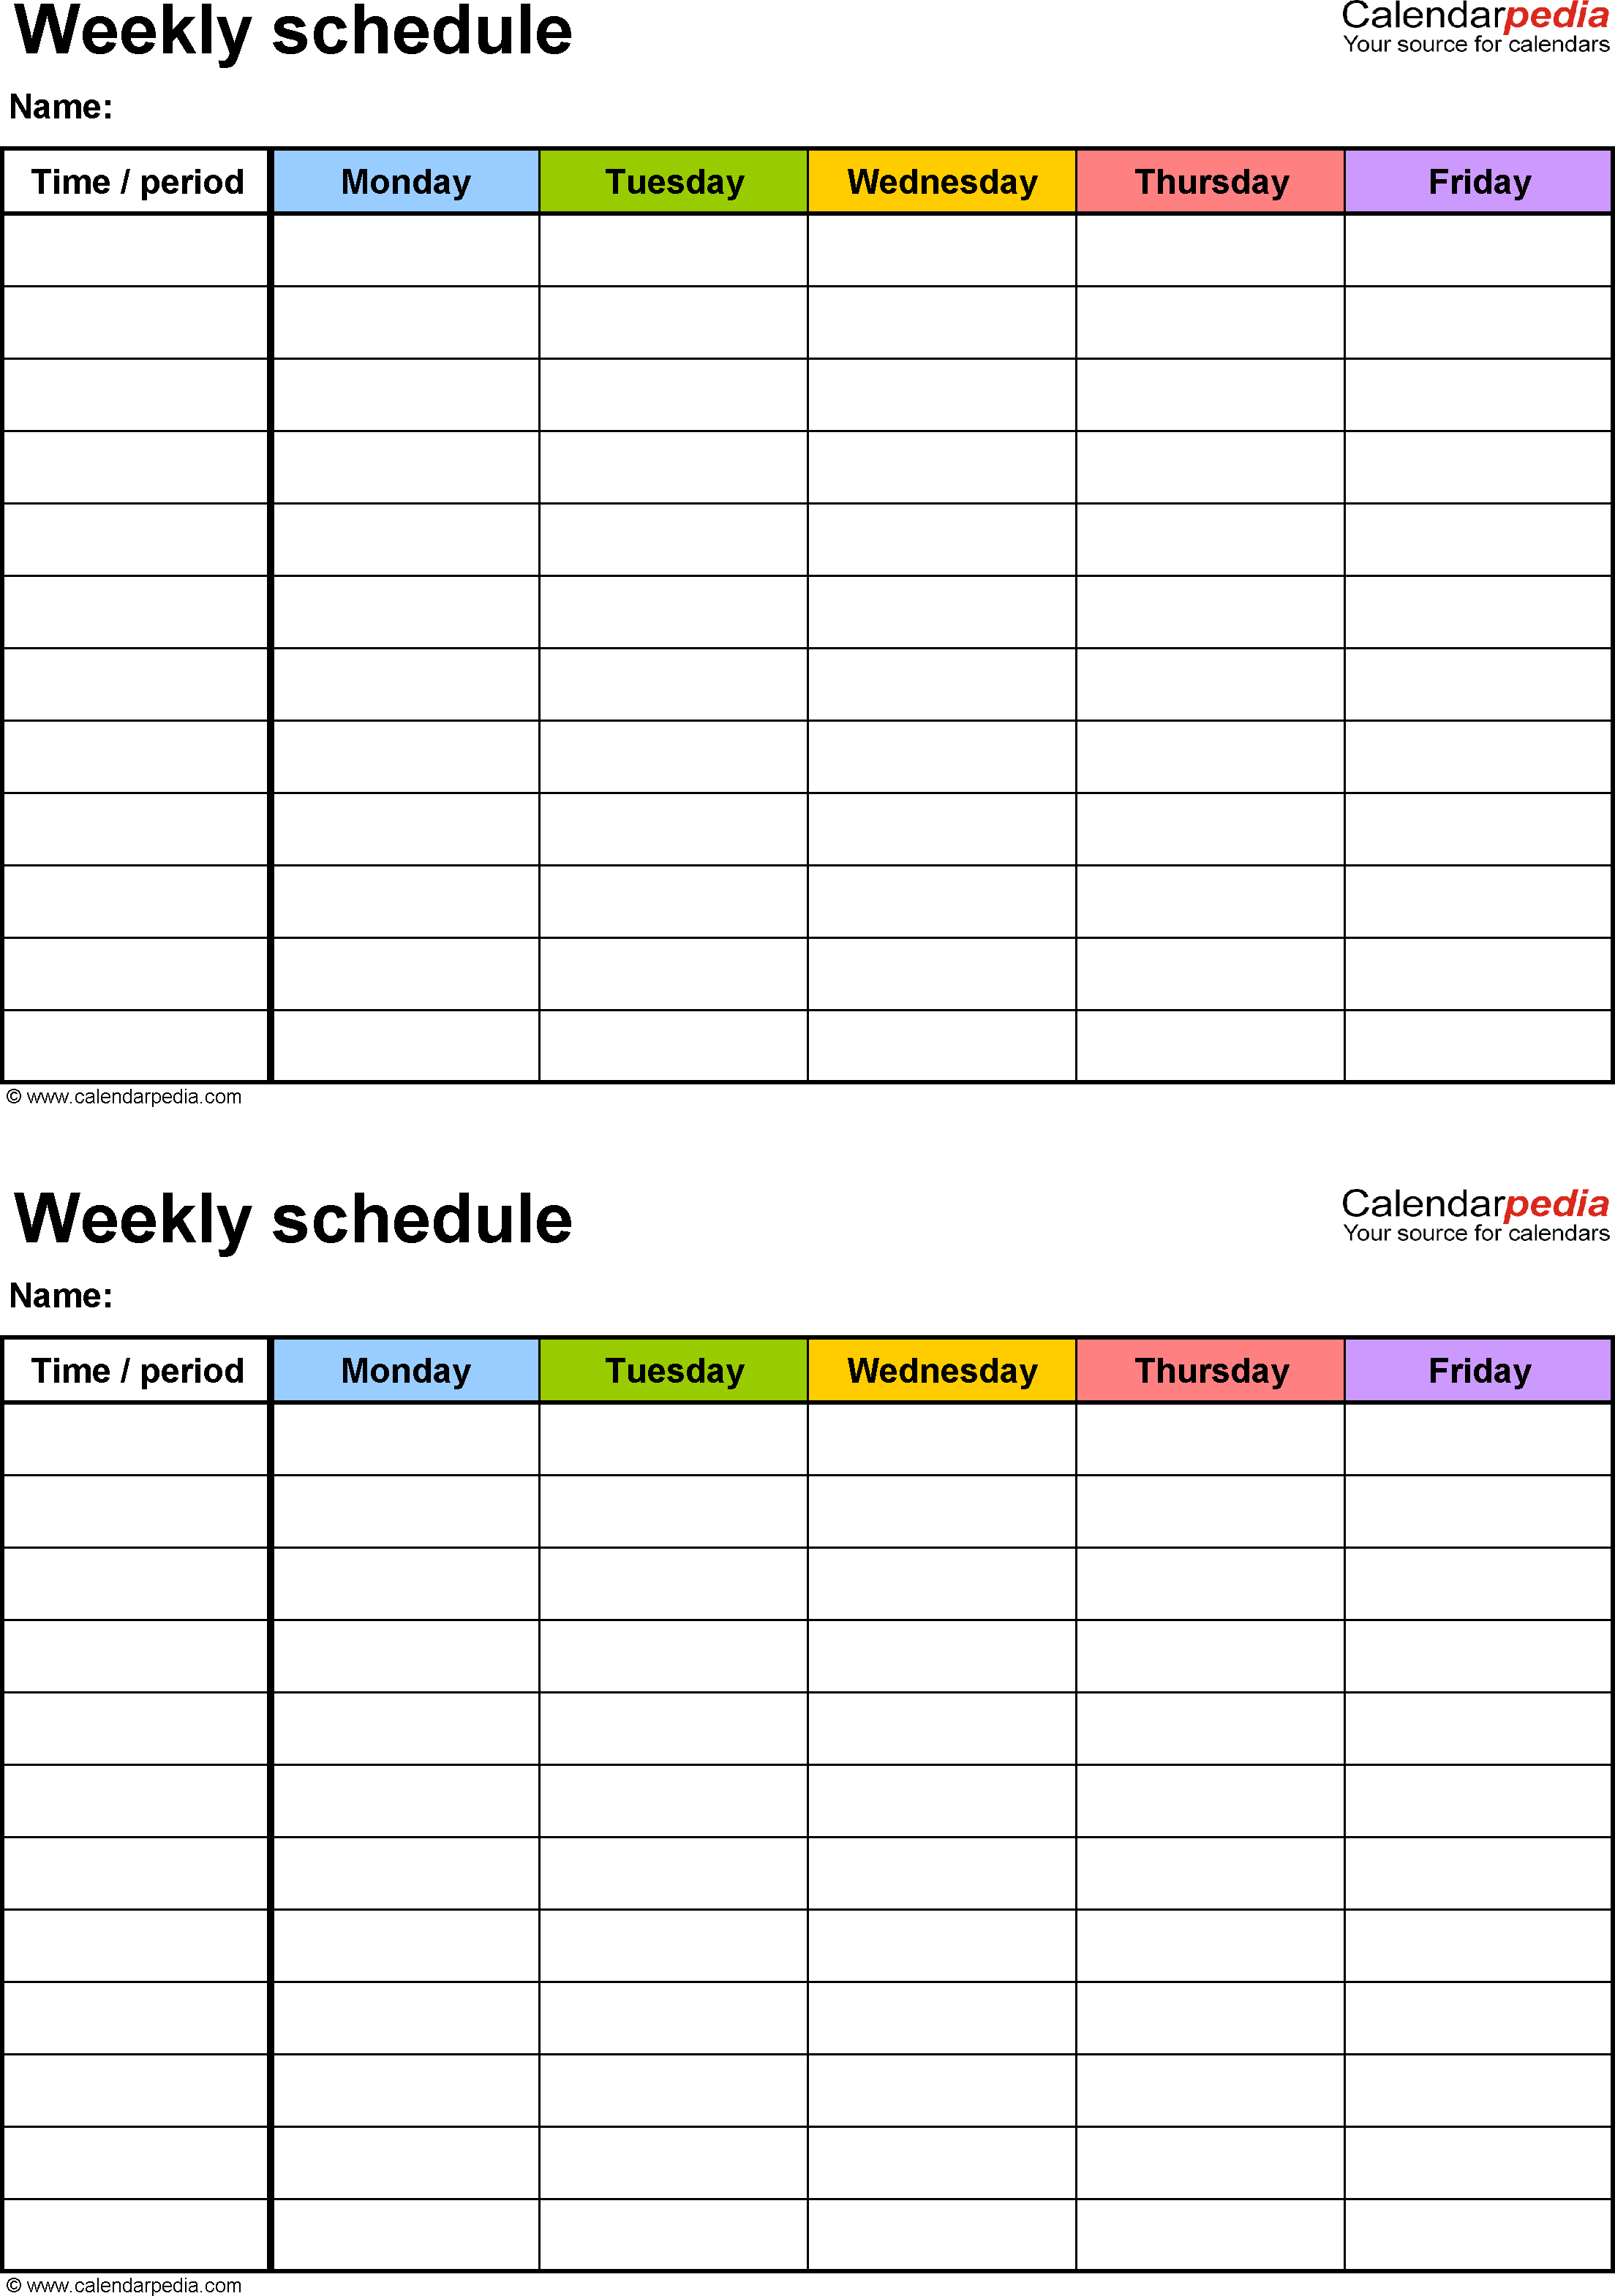 Weekly Schedule Template For Pdf Version 3: 2 Schedules On 2 Week Calendar Sheets